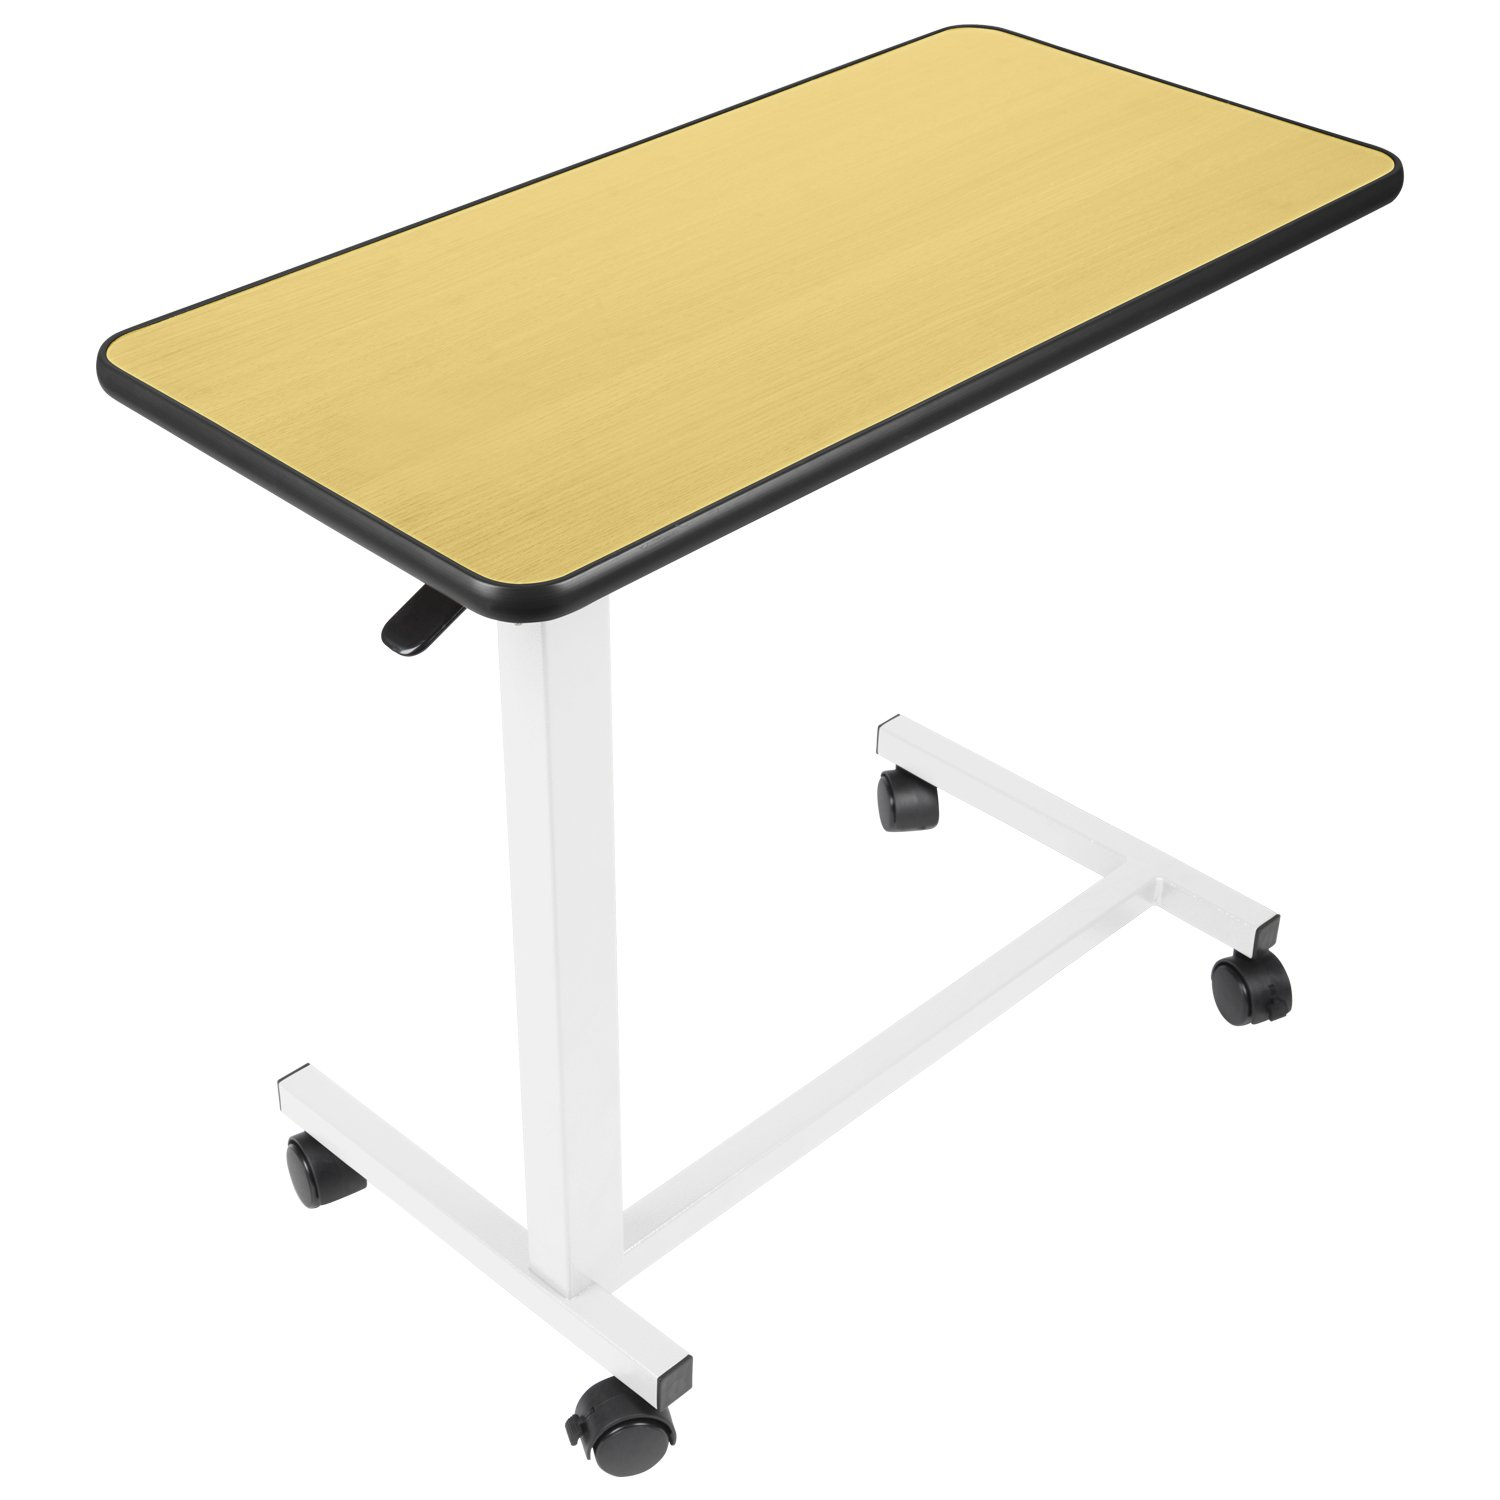 Vive Overbed Table - Swivel Wheel Rolling Tray Table - Adjustable Bed Table for Home or Hospital - Laptop, Reading and Breakfast Cart for Bedridden Patients